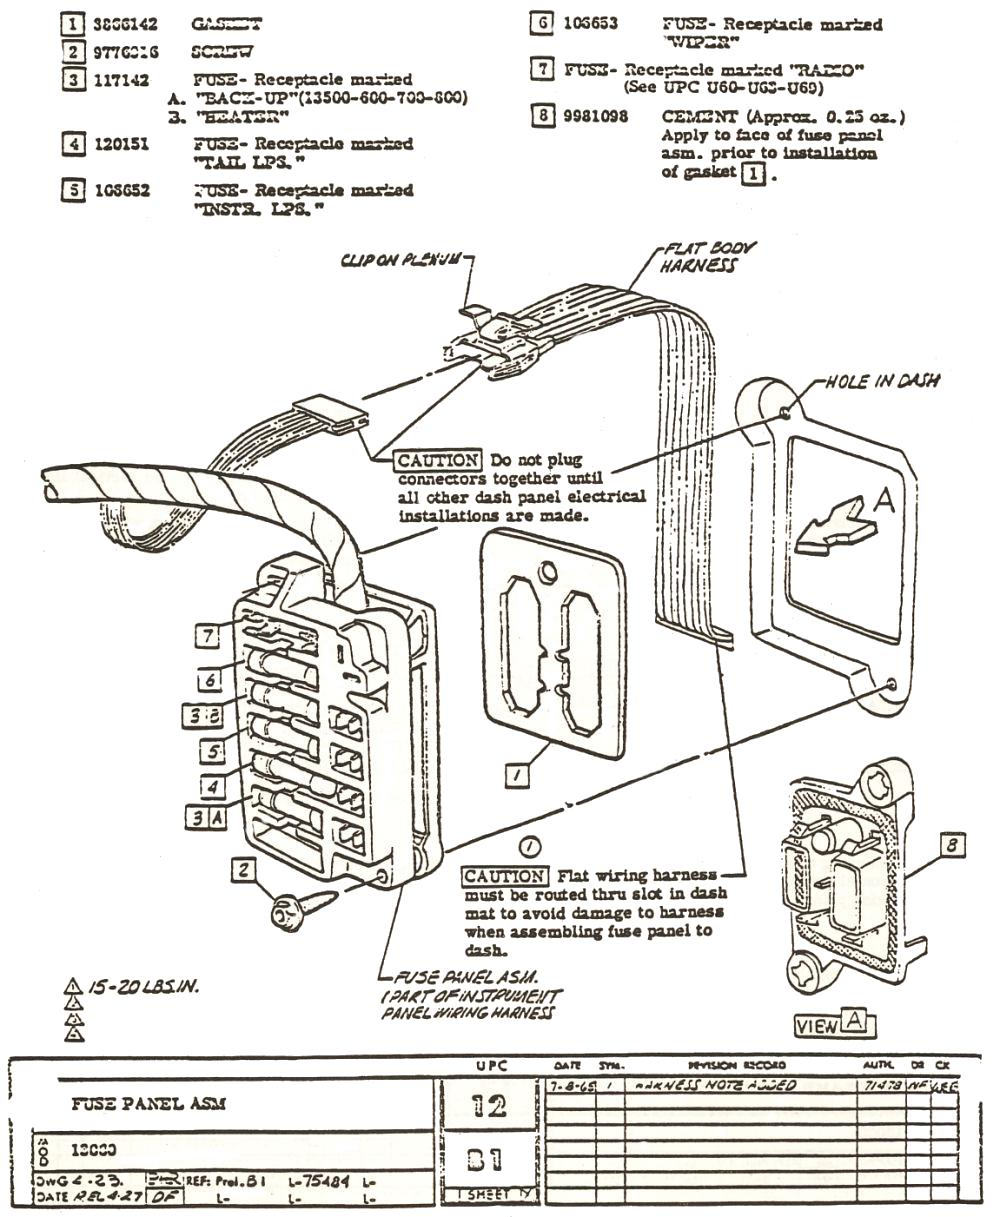 hight resolution of 1966 chevy fuse box my wiring diagram67 fuse panel wiring diagram chevy nova wiring diagram show